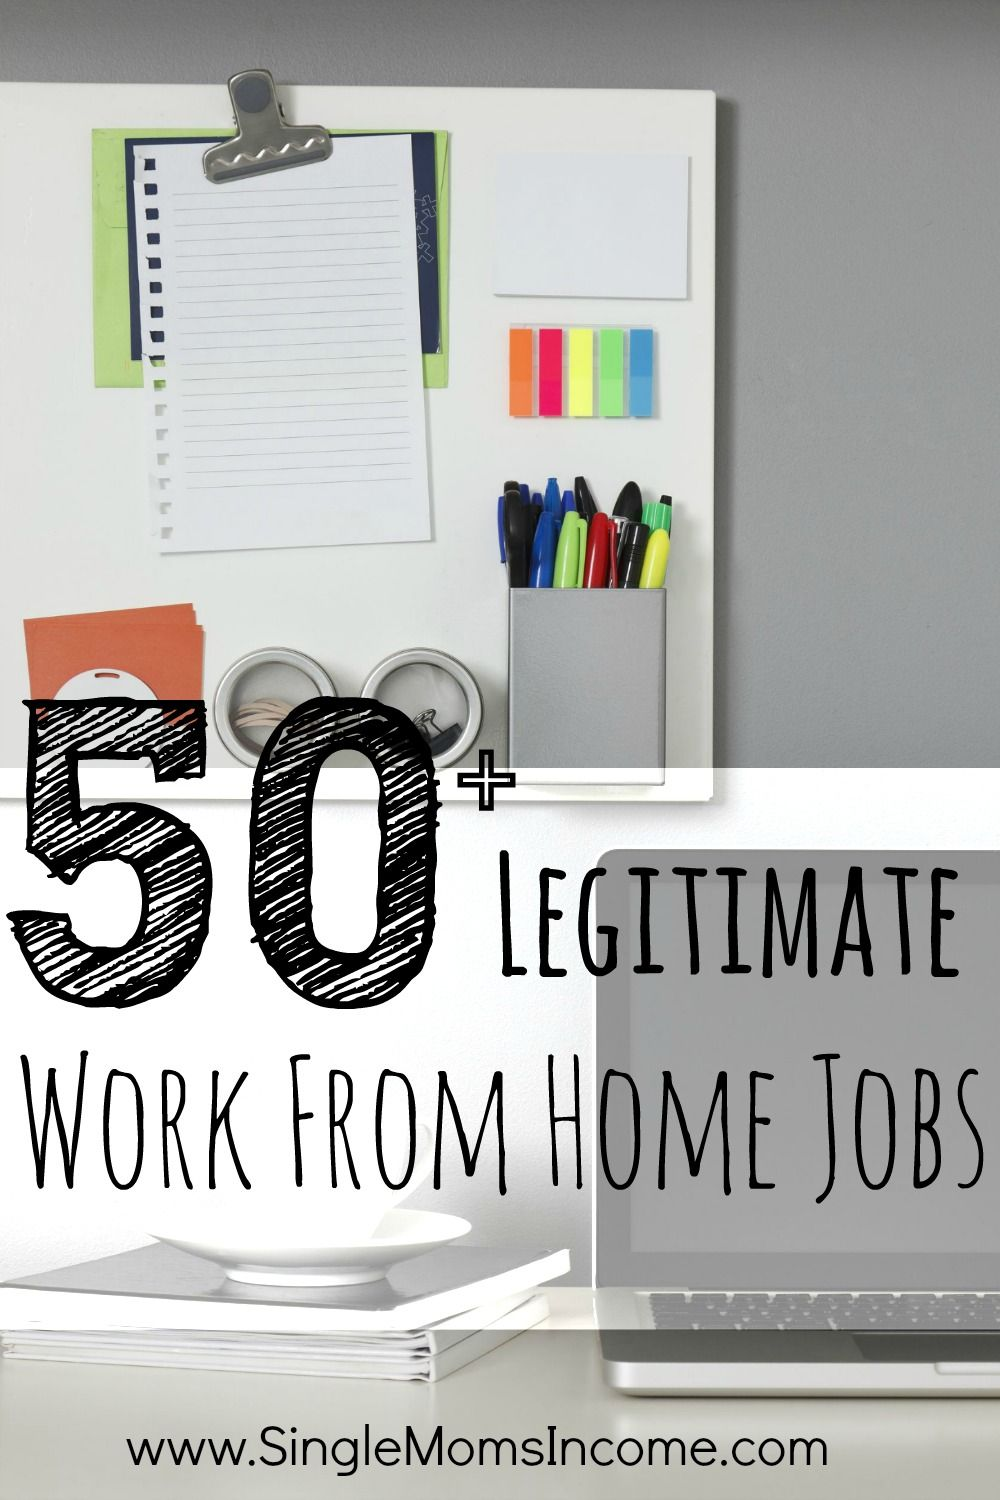 50 legitimate work from home jobs searching work from home the only way i could get my budget to work for me was to earn more money i tried countless work from home jobs before finally finding the one that suited